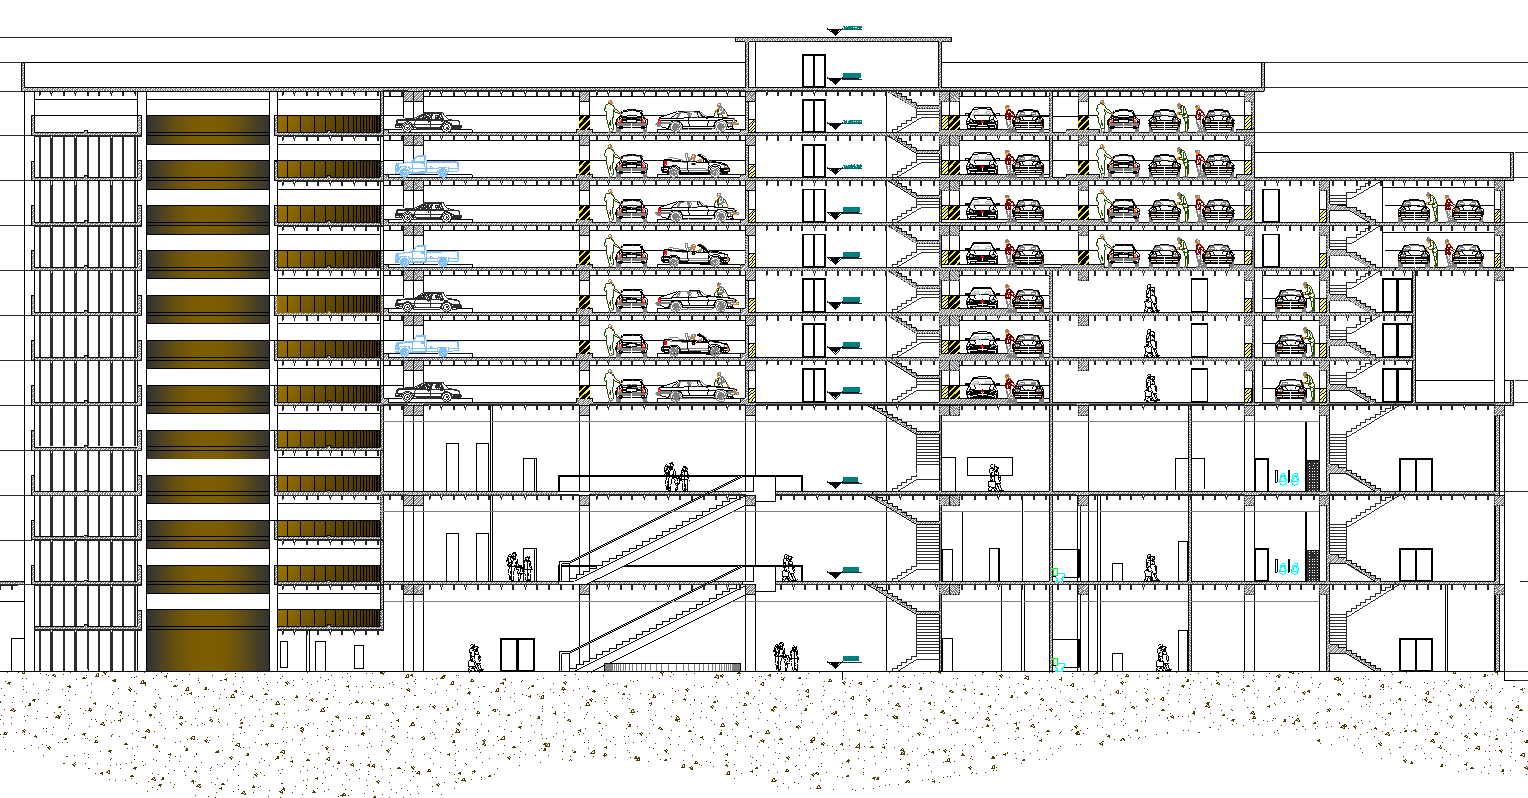 Free Download Section plan of Showroom